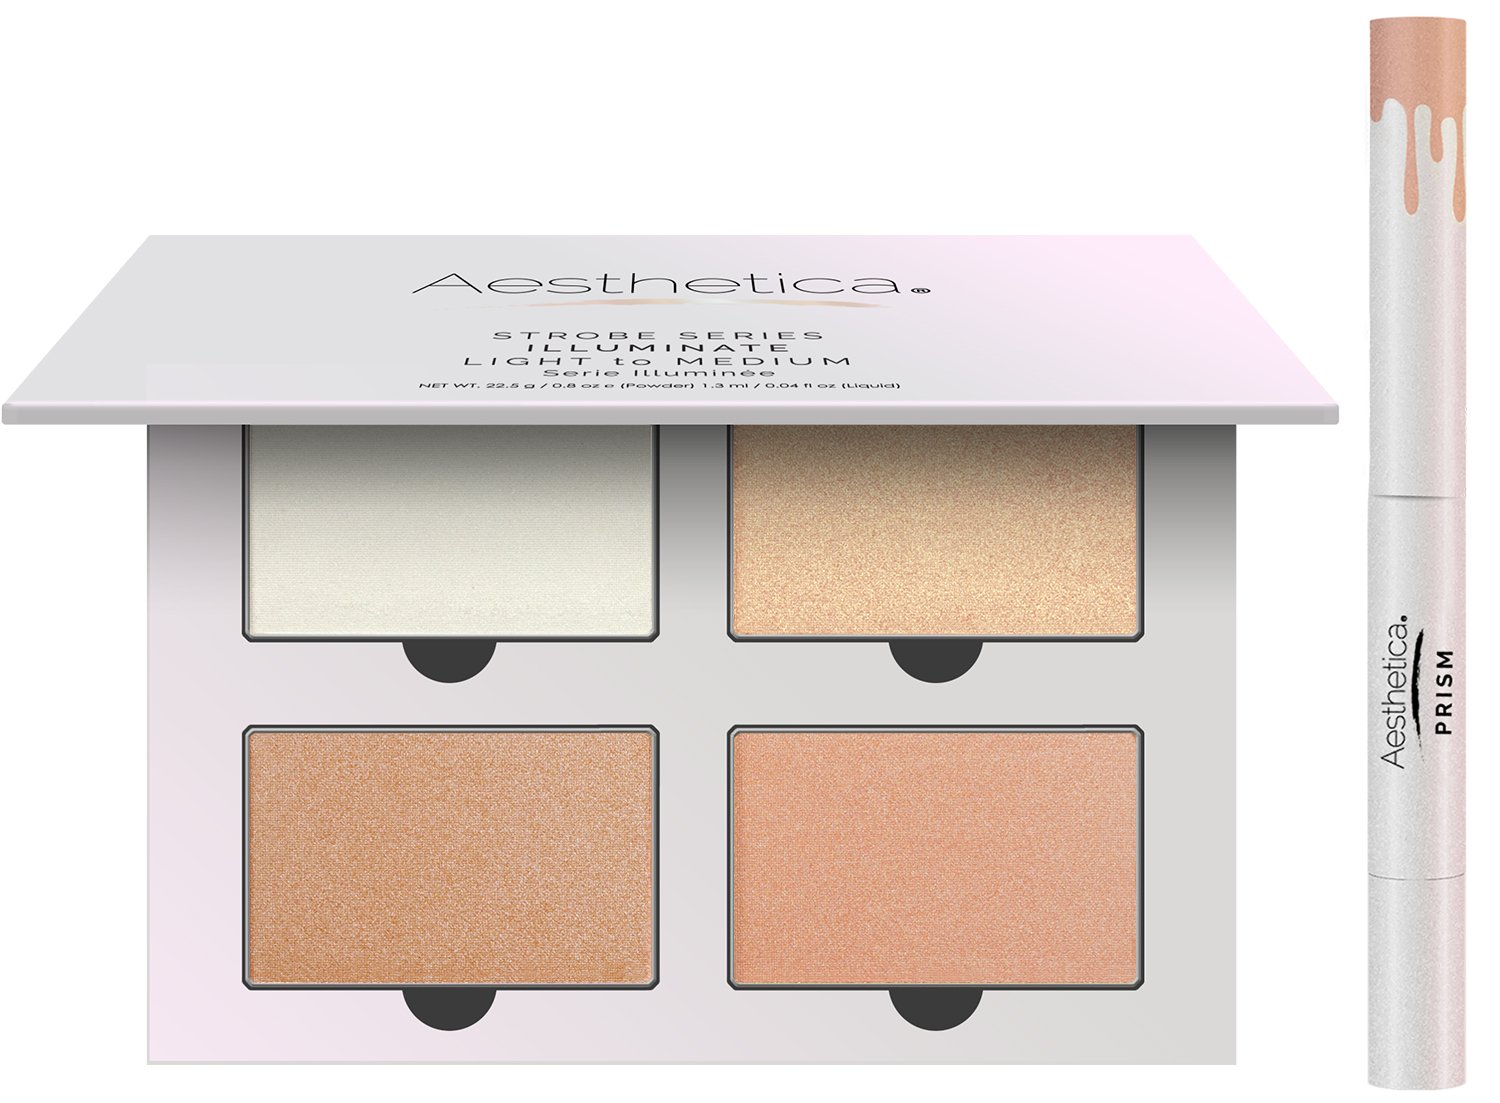 Aesthetica Strobe Series Highlighter Makeup Kit - 5-Piece Makeup Palette Set - Includes 4 Illuminating Powders and 1 Liquid Highlighter - Step-by-Step Instructions Included (Illuminate)